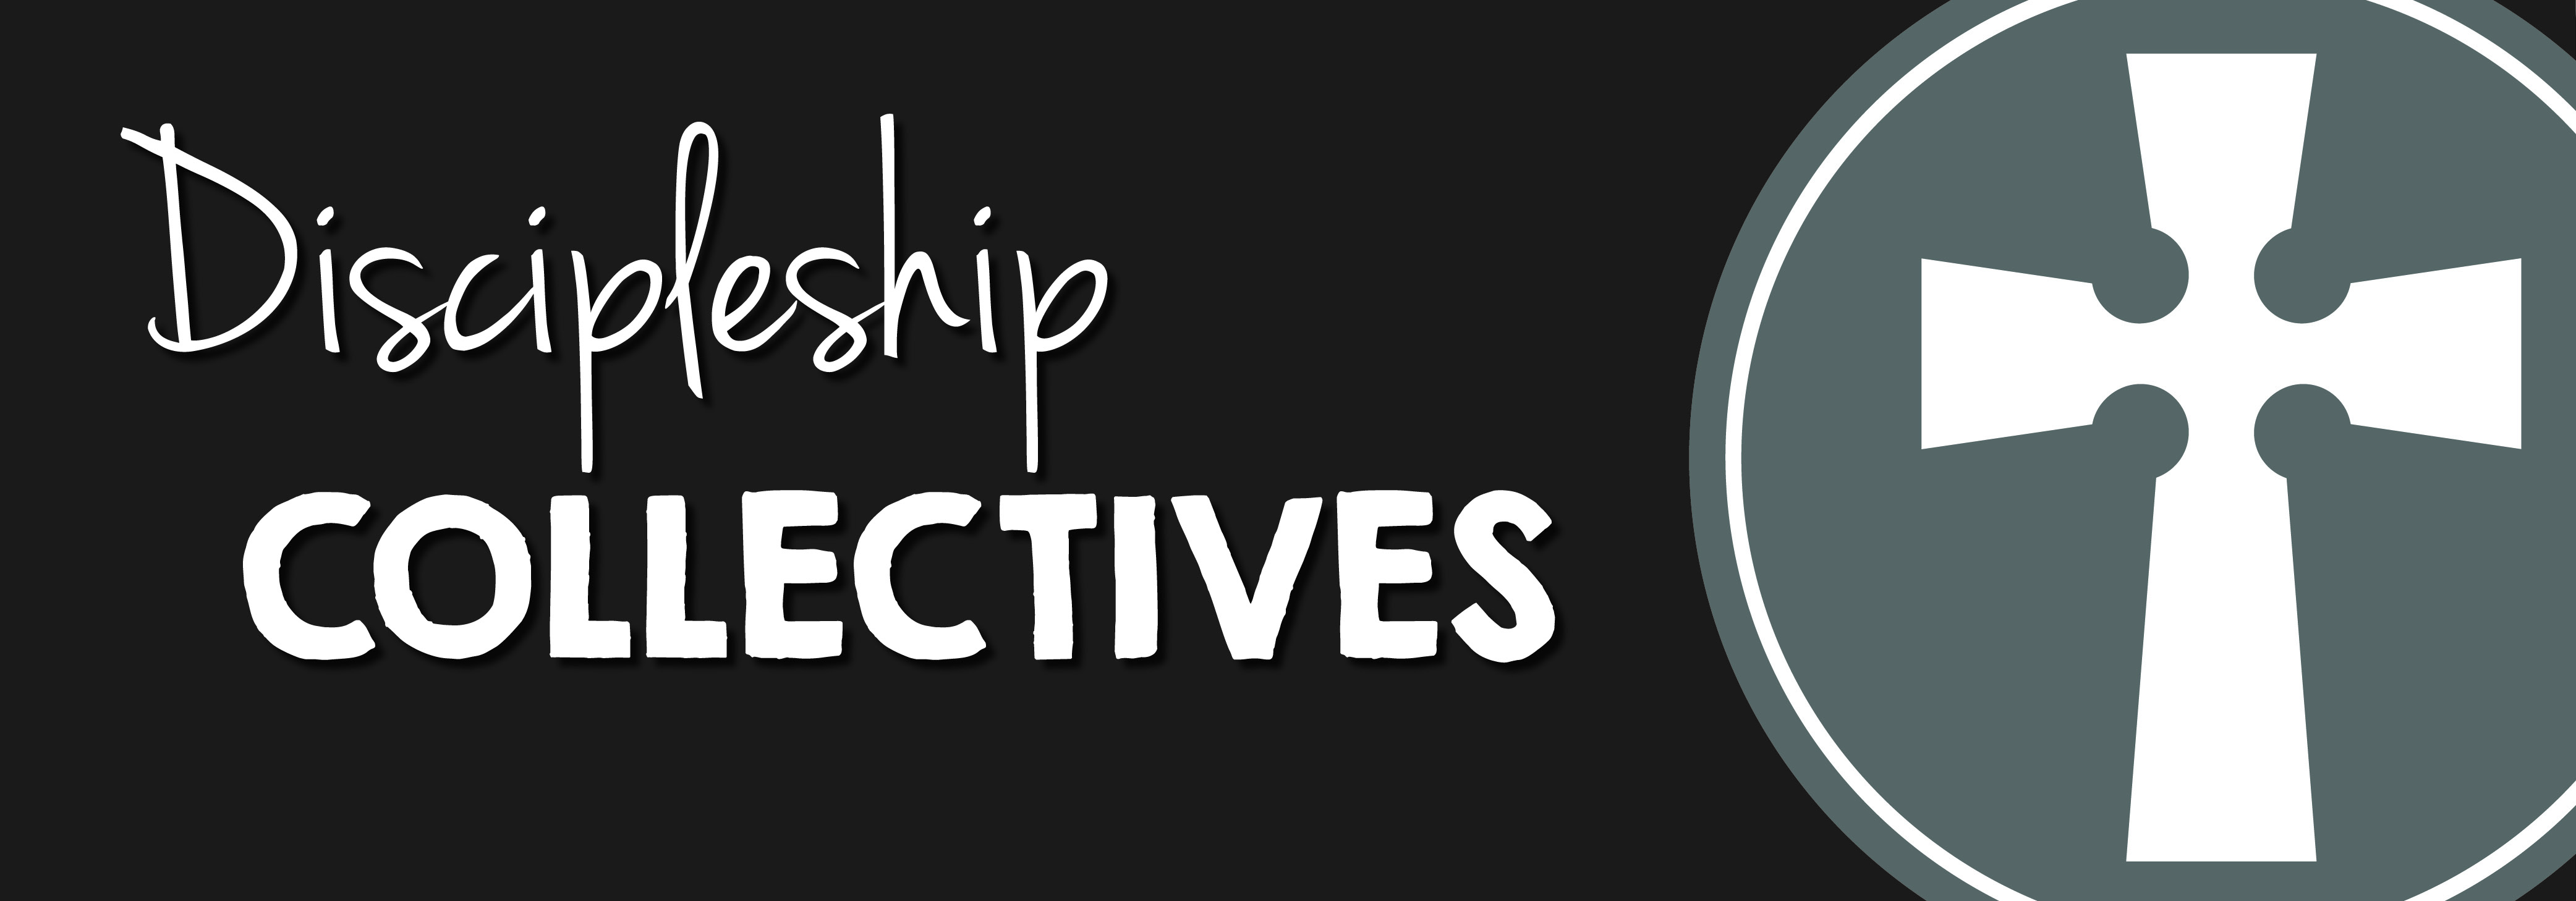 Discipleship Collectives